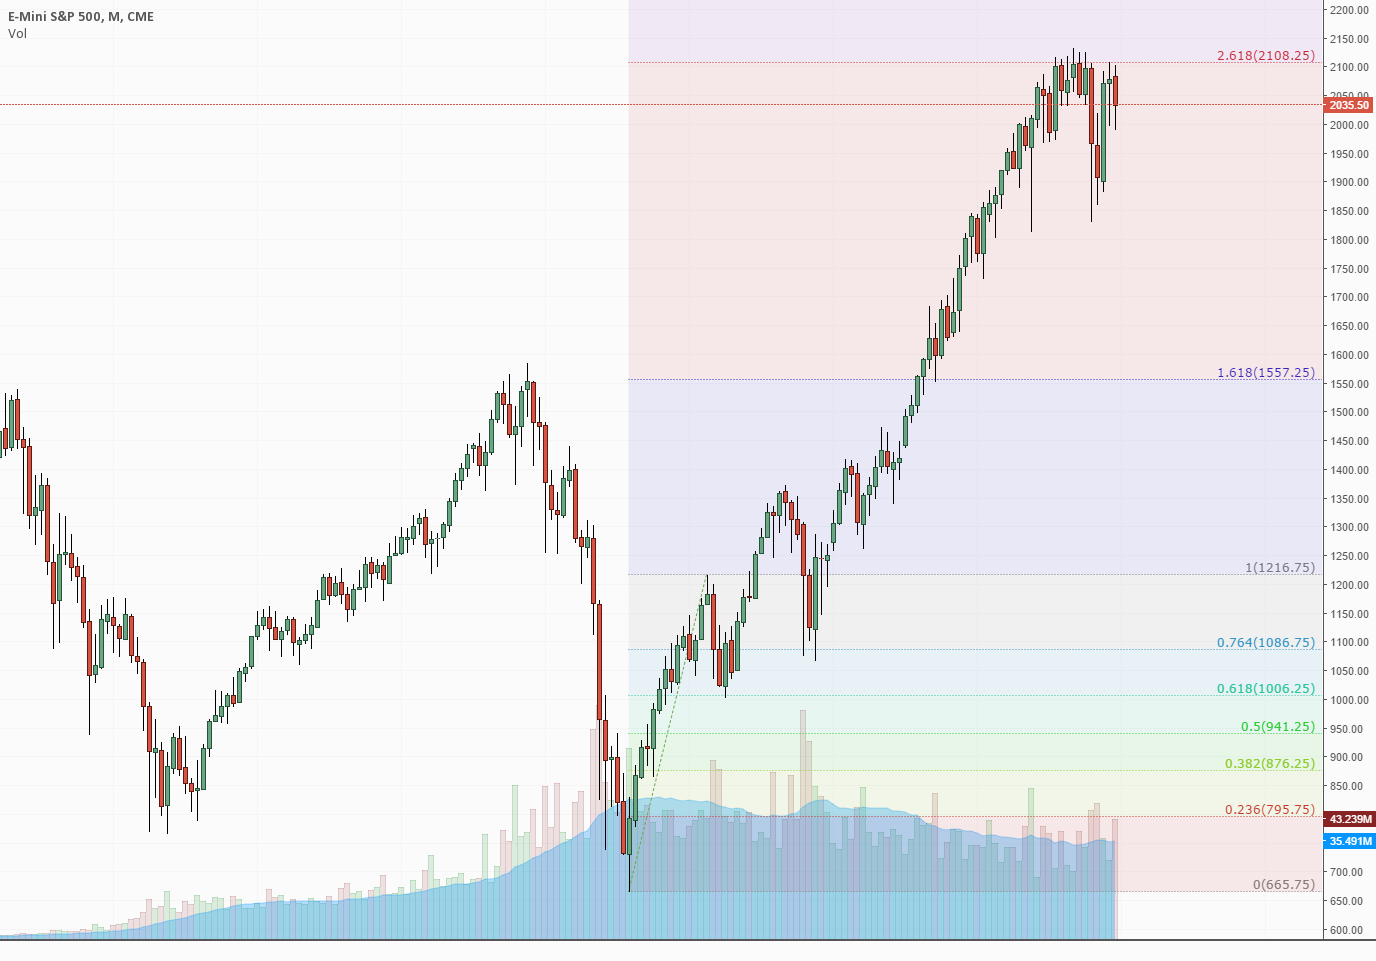 Stock Market Under Distribution for the Past Year